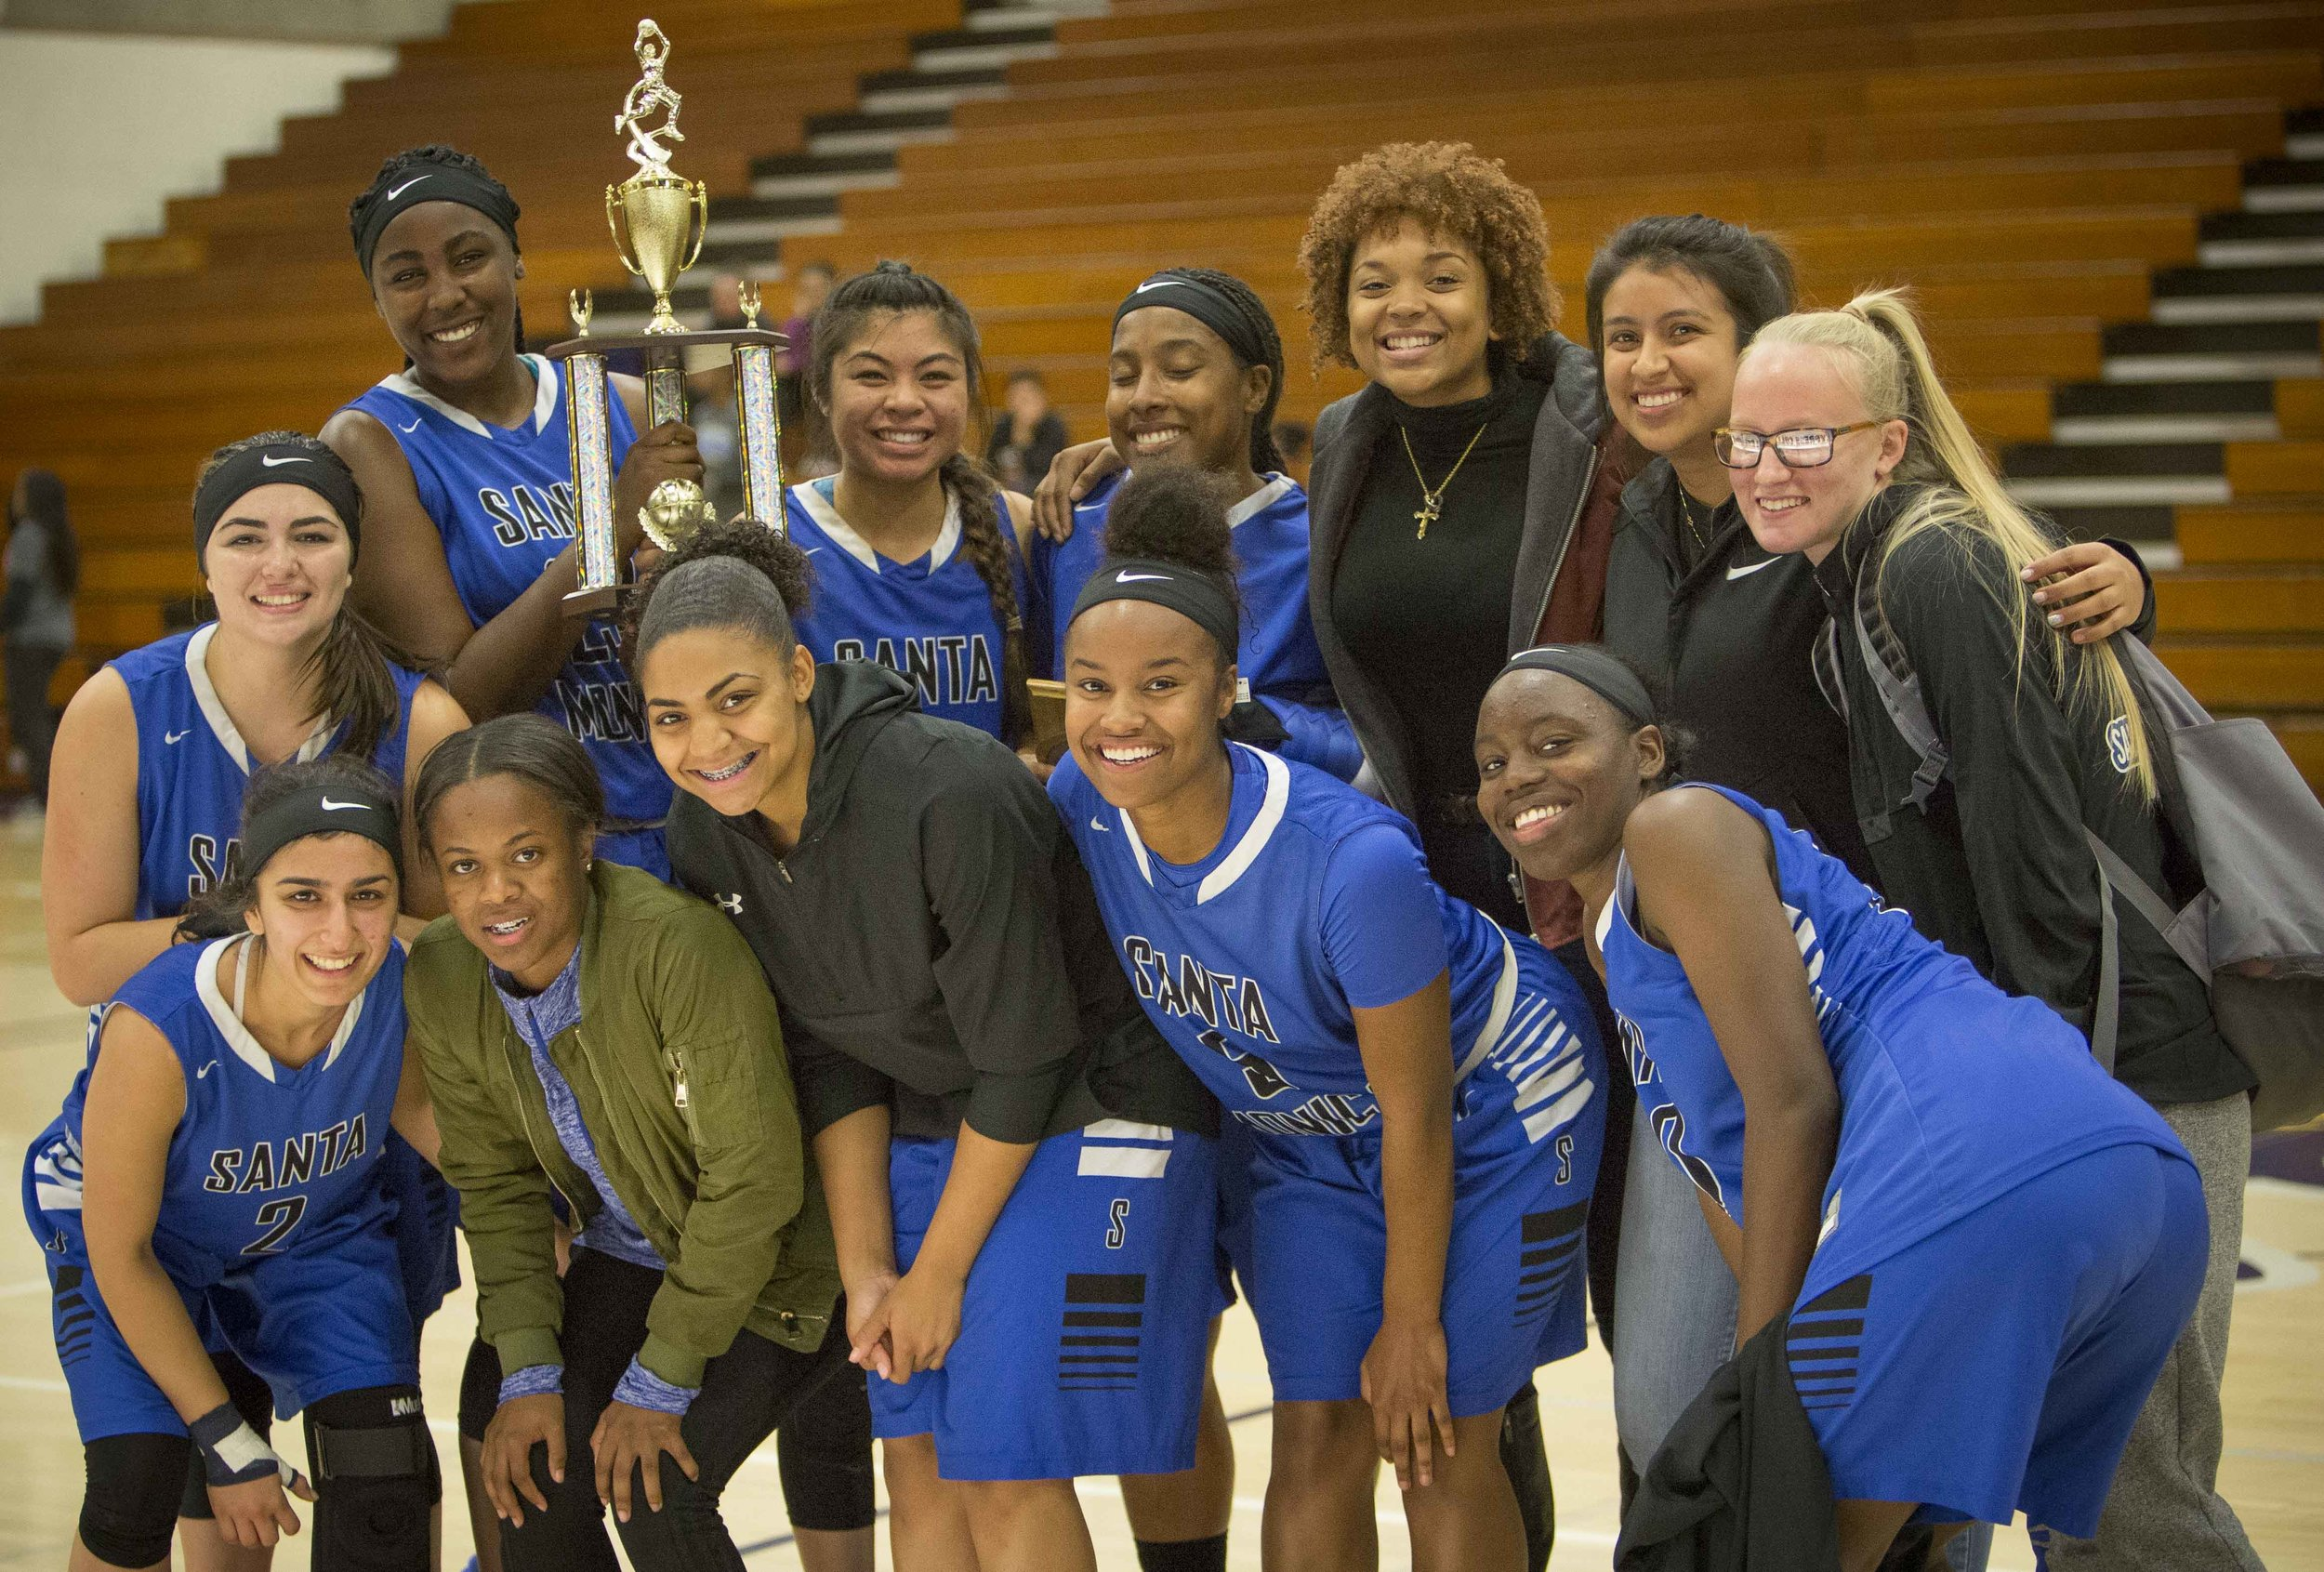 December 4th 2016. The Santa Monica College Corsair Womens Basketball team posing with thier trophy win against The Citrus College Owls in the 33rd annual Lady Charger Classic basketball tournament hosted by Cypress College in Cypress, Calif.. The Corsairs would win 74-69 earning them third place in the tournament. Photo by Daniel Bowyer.